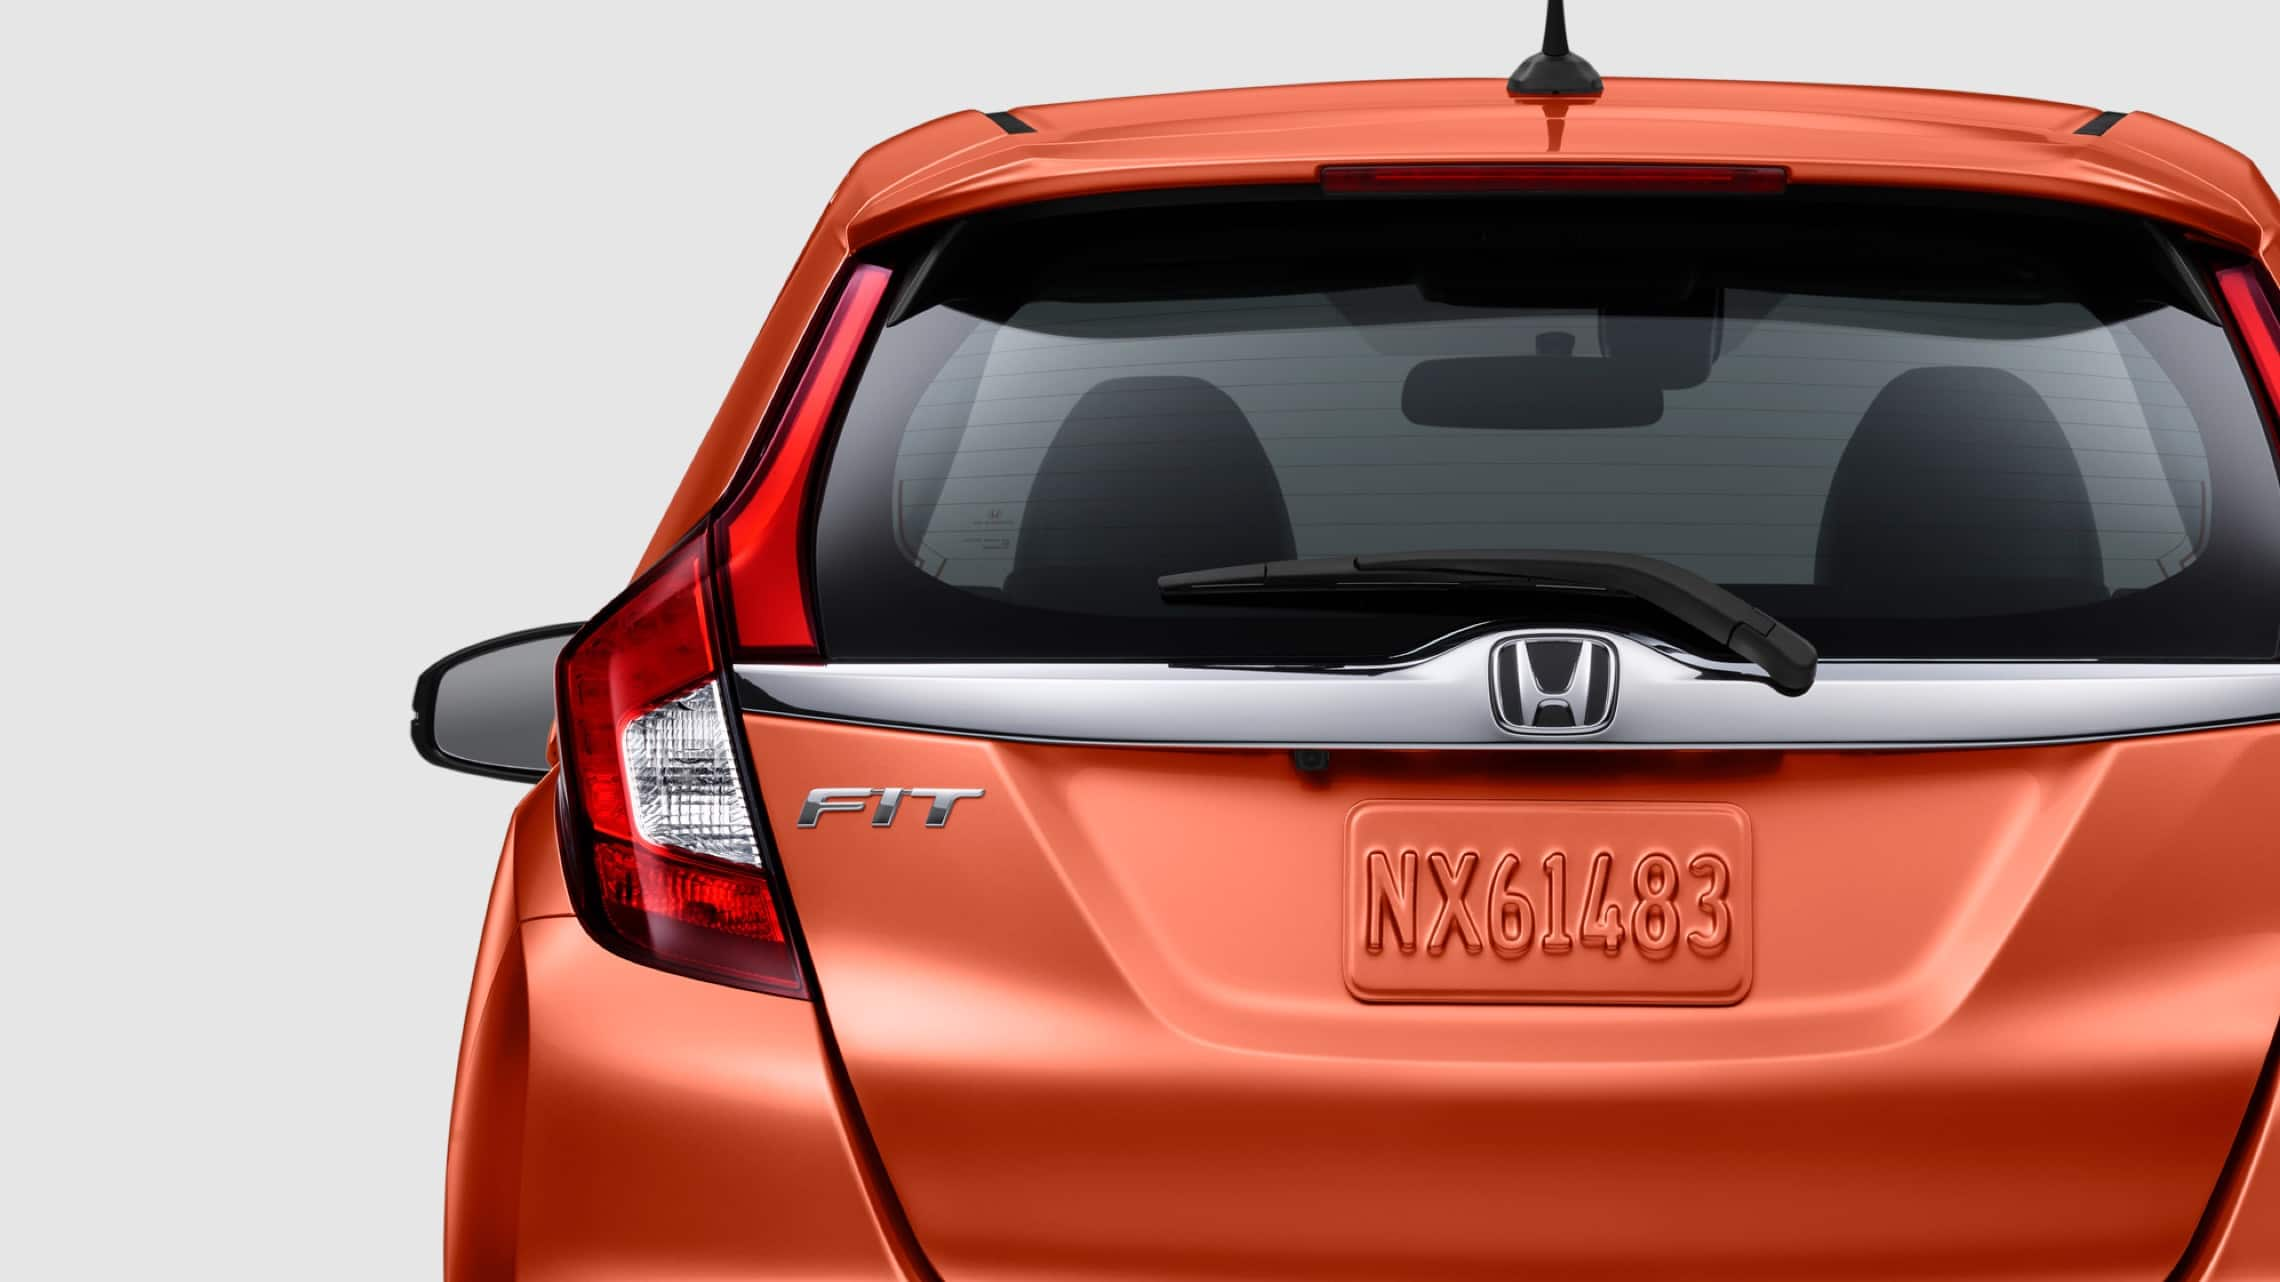 Vista exterior trasera de las luces de freno de LED del Honda Fit EX-L 2020 en Orange Fury.